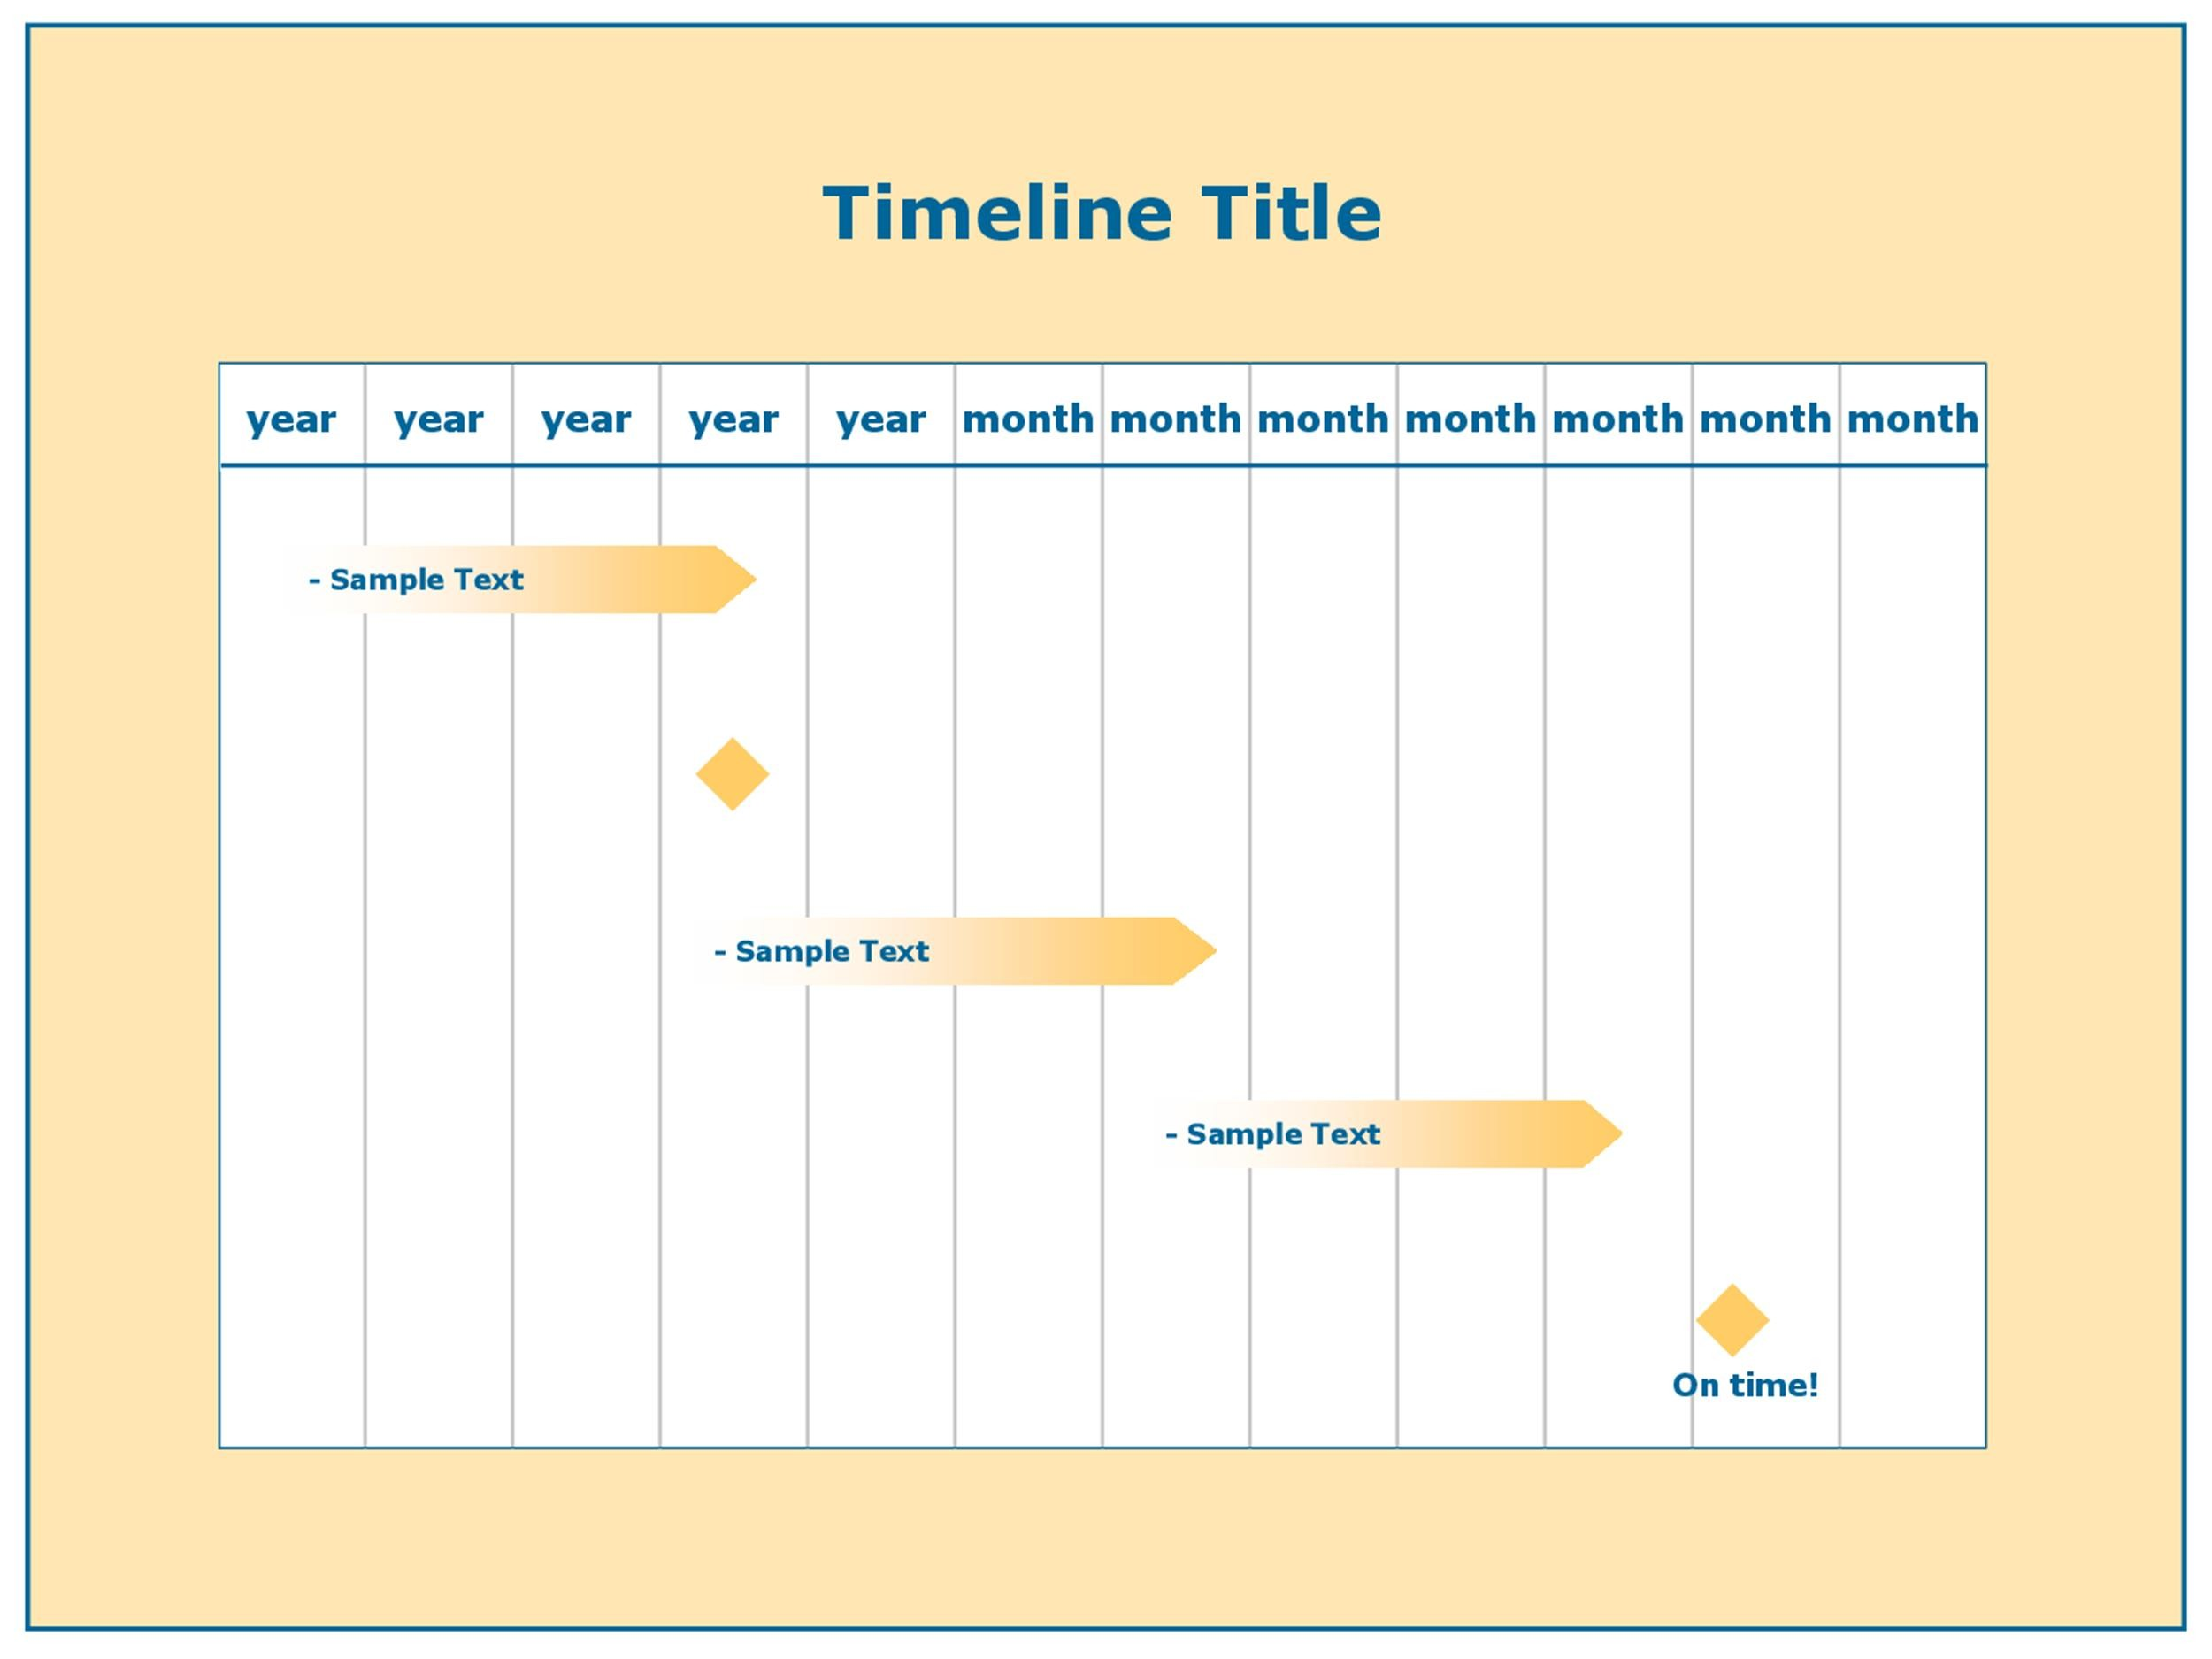 30+ Timeline Templates (Excel, Power Point, Word) - Template Lab - timeline sample in word